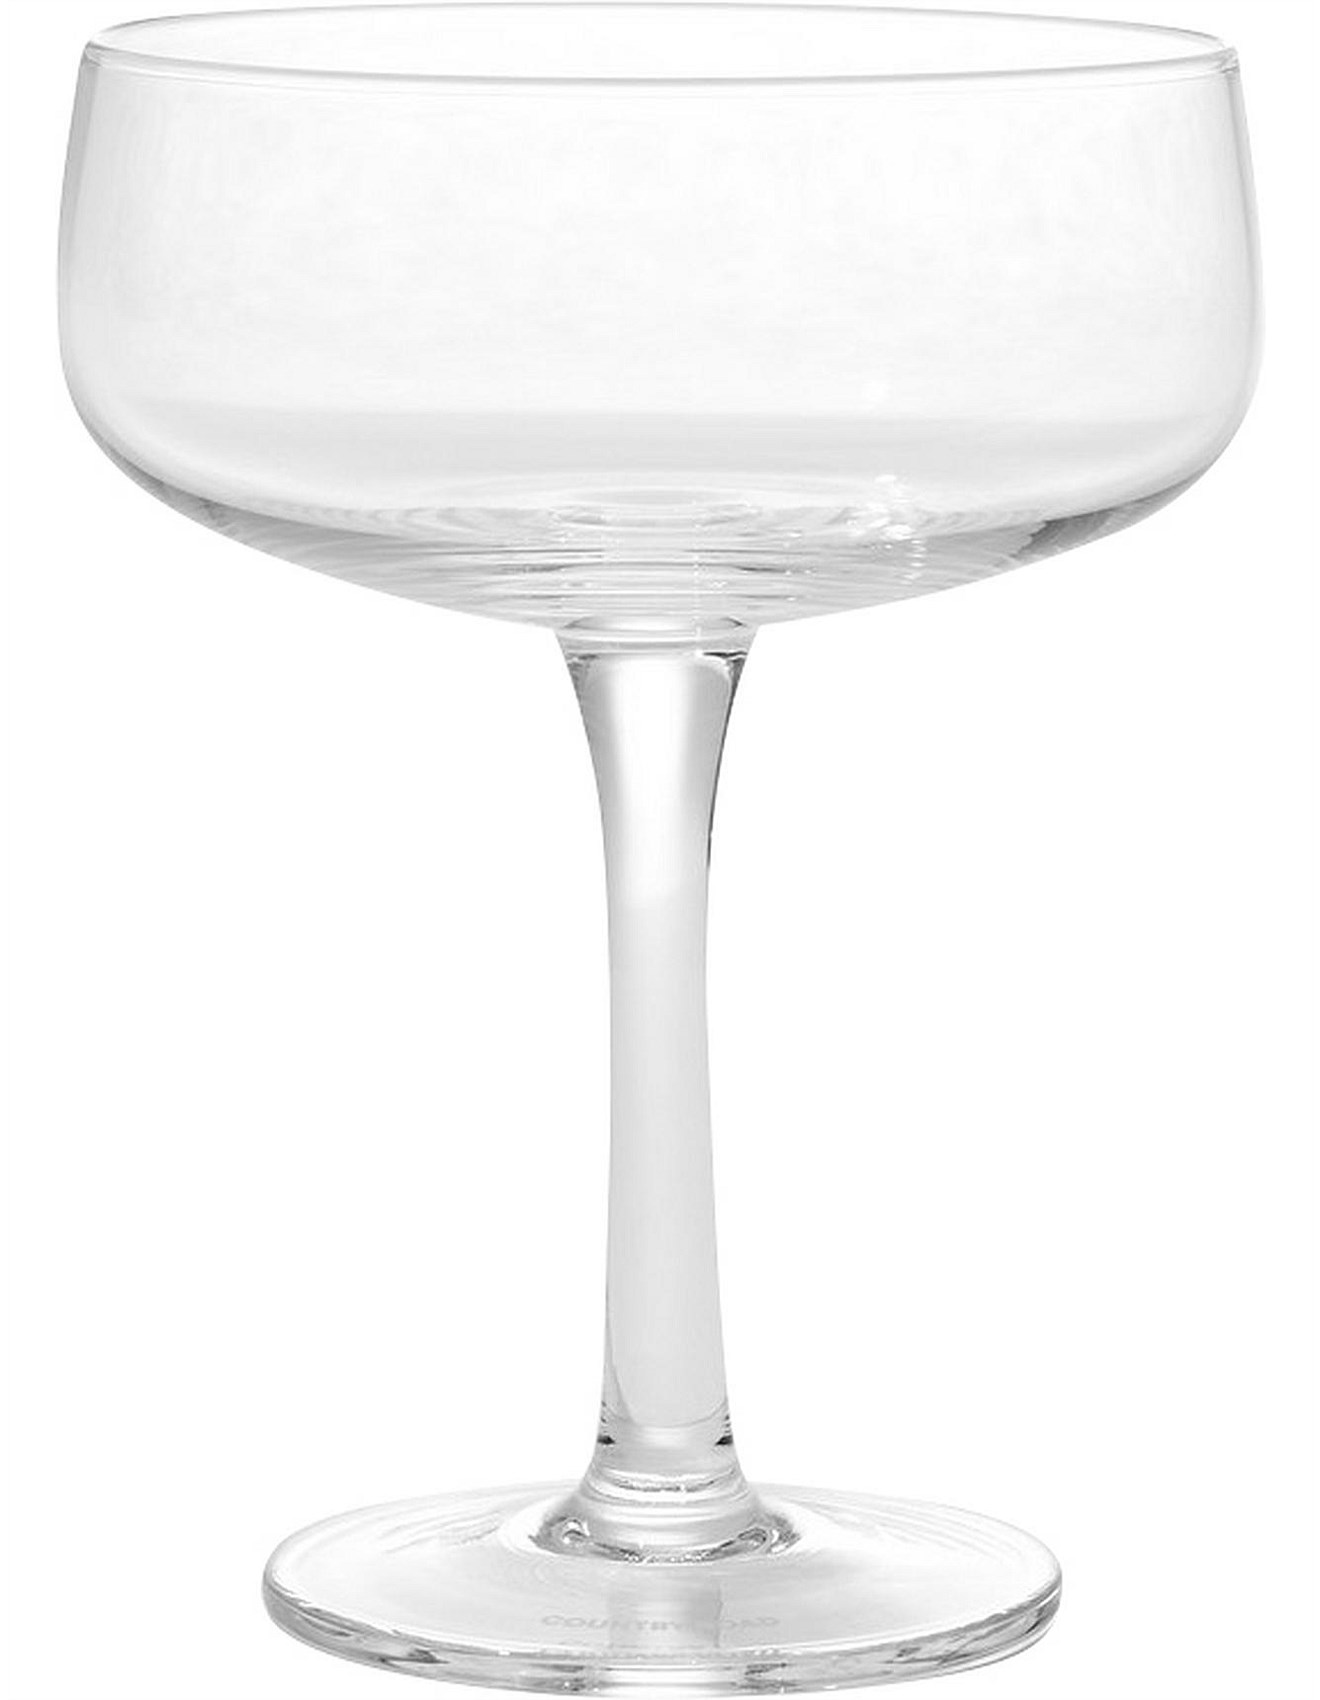 Country Road Buy Country Road Clothing More David Jones Alto Coupe Glass